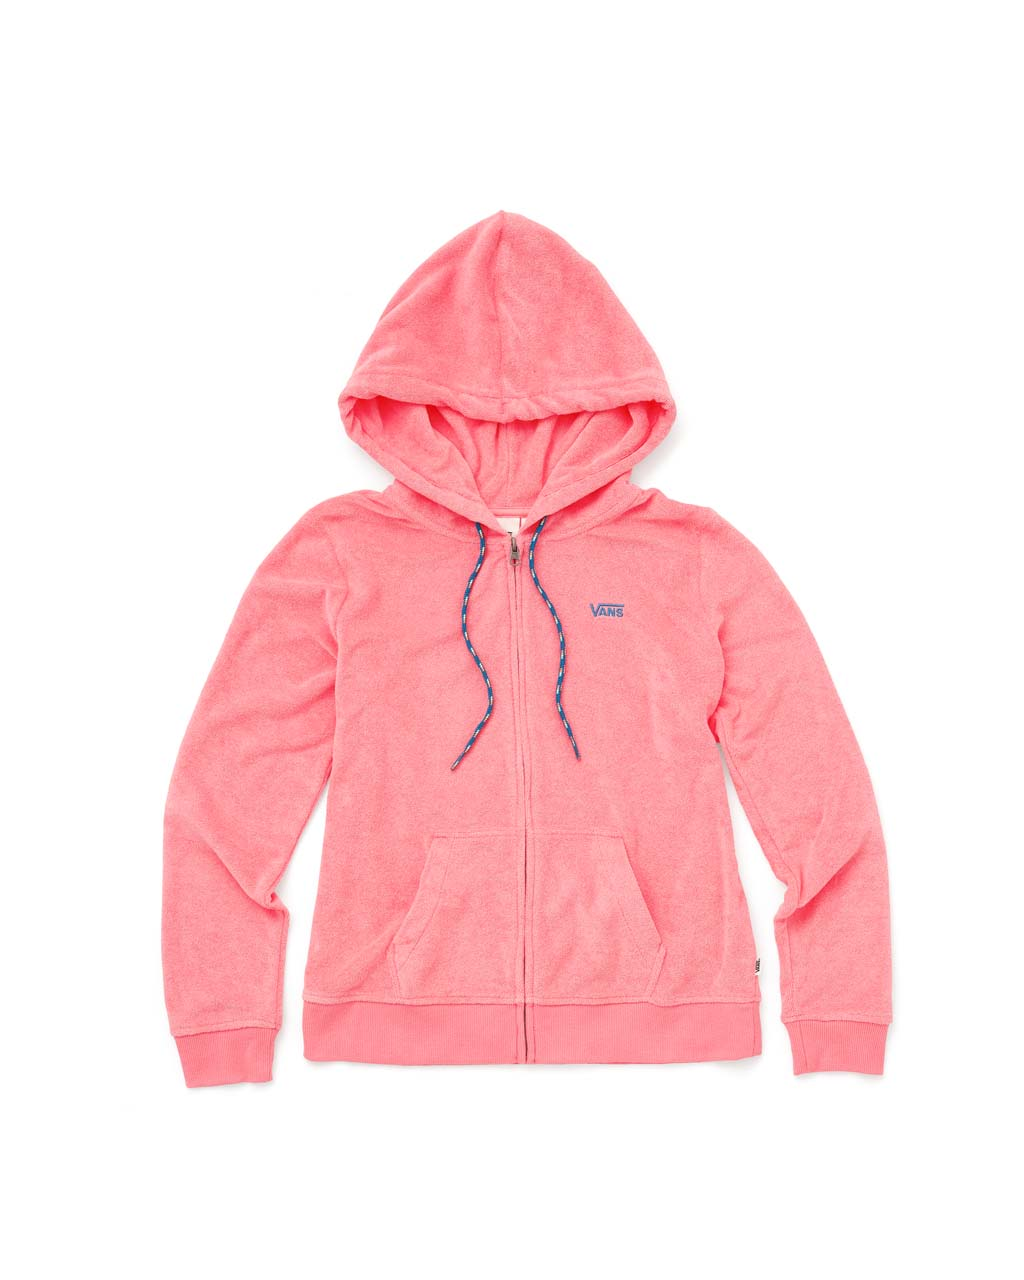 Breezy Zip up Hoodie - Strawberry Pink